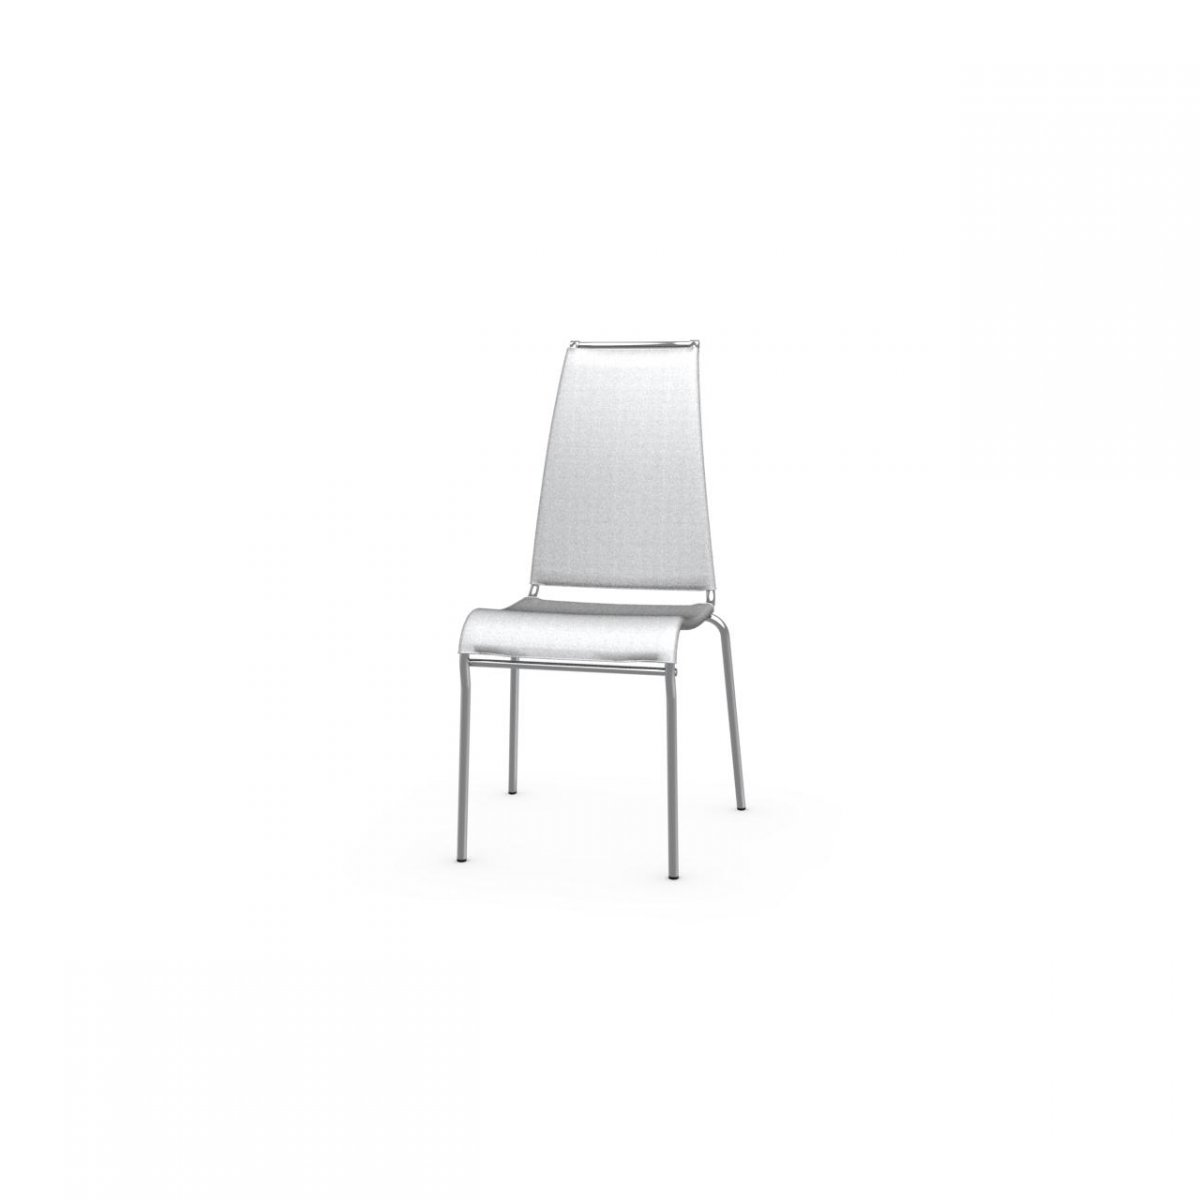 Connubia by Calligaris: SEDIA AIR HIGH CB1069 Connubia by Calligaris ...